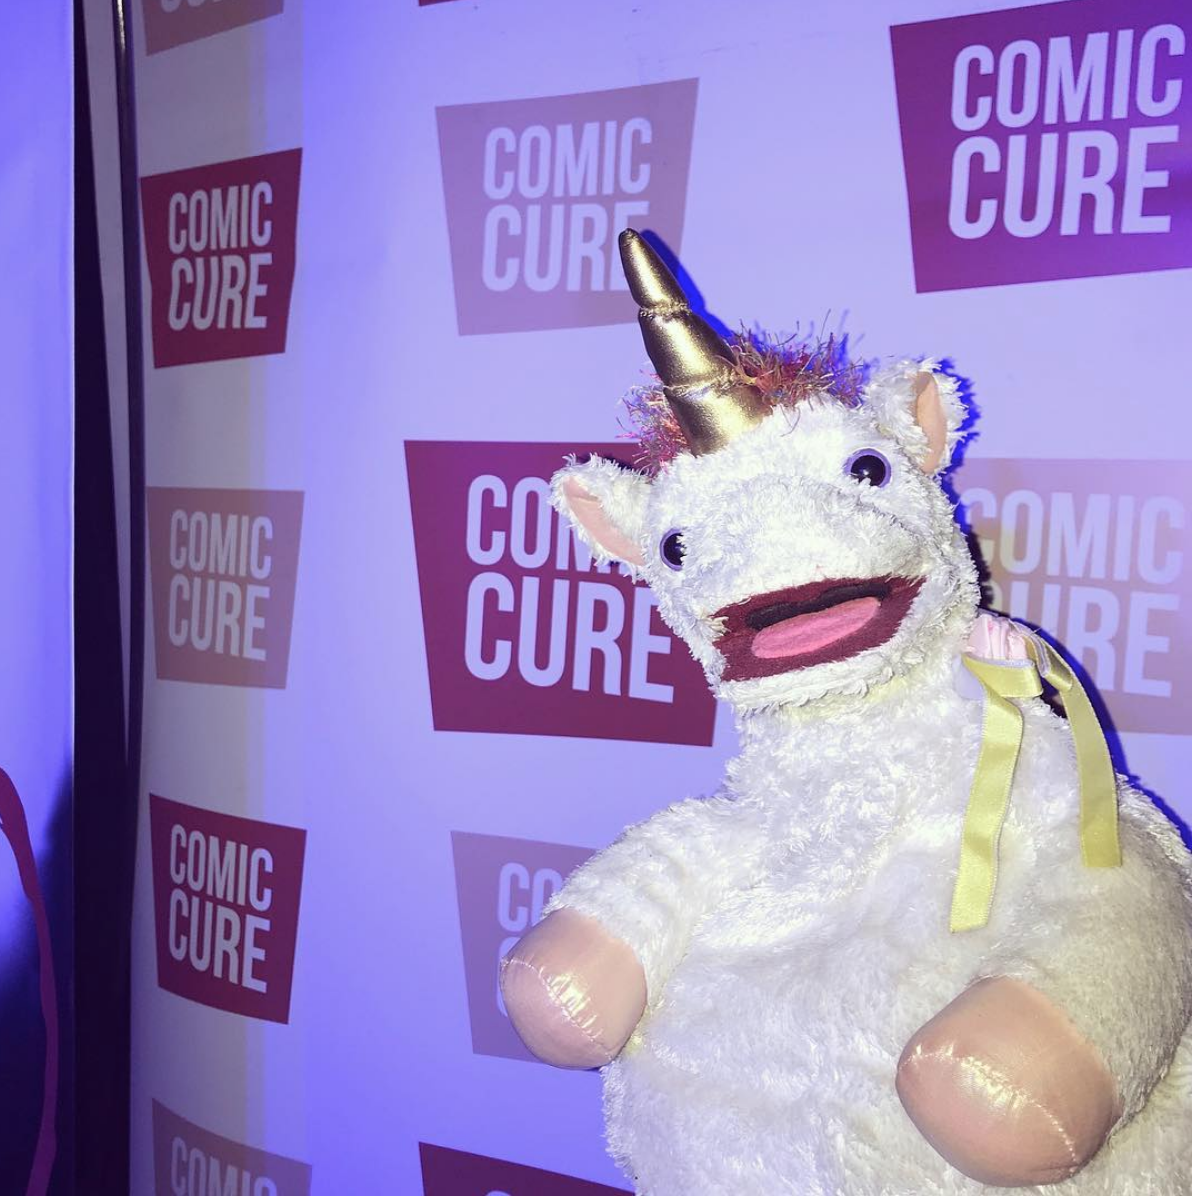 6/05/18  - Marty and I placed third in the Comic Cure LA Pride Comedy Festival!!